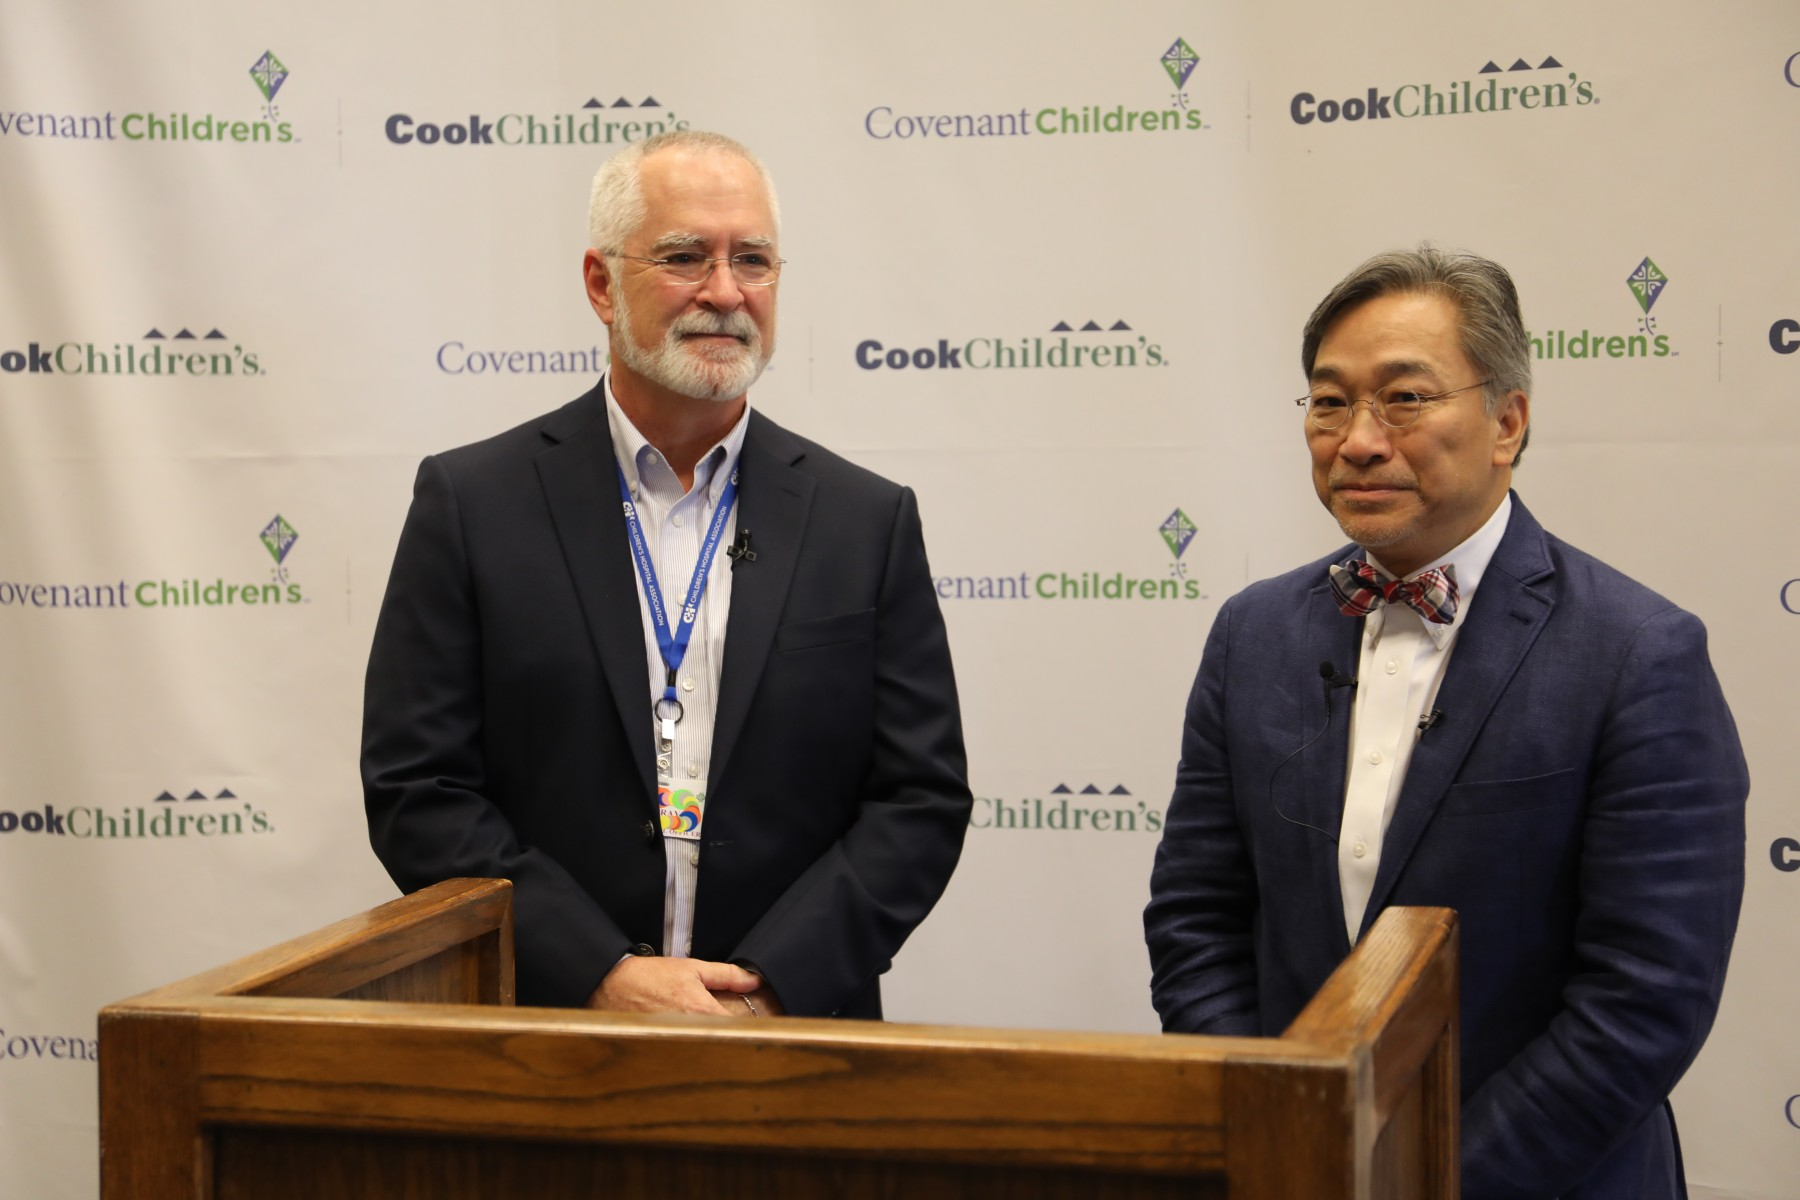 Dr. David Gray and Dr. Vincent Tam at Press Conference at Covenant Children's on June 16, 2020